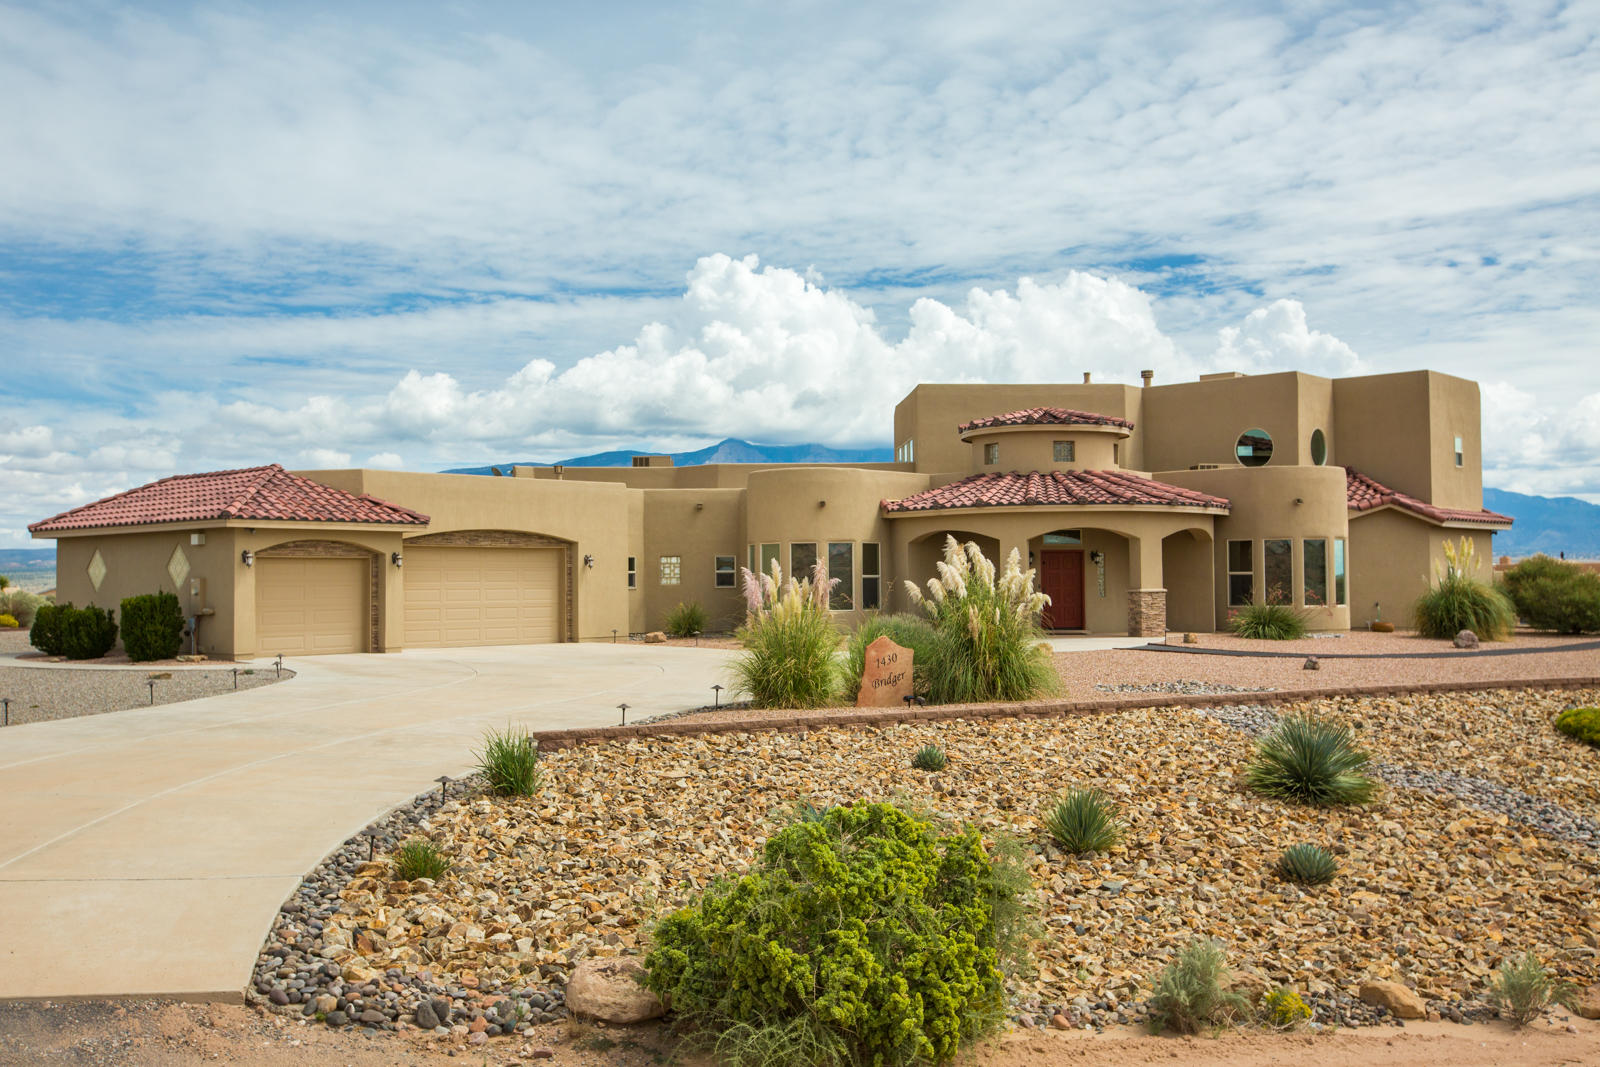 Don't miss this beautiful custom home in Rio Rancho Estates. Incredible, unobstructed views of the mountains, city lights, & surrounding areas. This functional, open concept floor plan is light & bright~ so many windows! Large main living area w/ custom gas fireplace. Gourmet kitchen bodes stainless appliances, granite counters, custom tile backsplash, two sinks, island, walk-in pantry, & plenty of seating. Perfect for entertaining! Main level master is huge, offers backyard access (straight out to the hot tub!), walk-in closet, large master bath w/ his & hers vanities, jetted tub, & large walk in shower. Nicely sized secondary bedrooms. Large loft w/ balcony & 3/4 bath. Huge covered patio w/ fireplace for year round outdoor living. Beautifully landscaped, front & back. And, so much more!